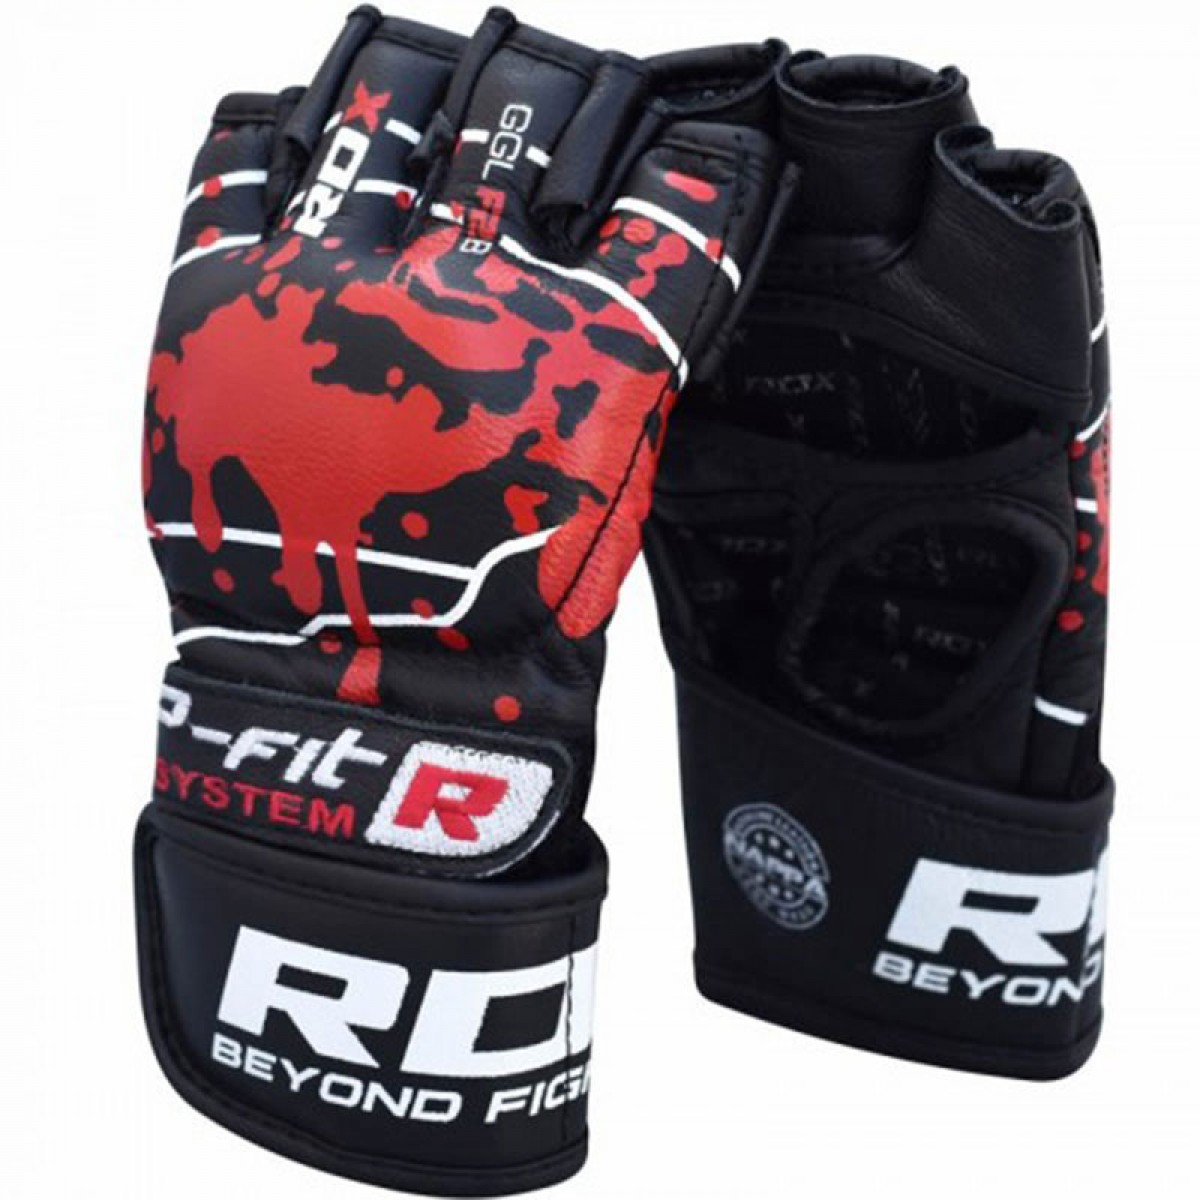 Купить Перчатки для ММА RDX Grappling Gloves Blood Double Strap Black, 9864_bk_rd